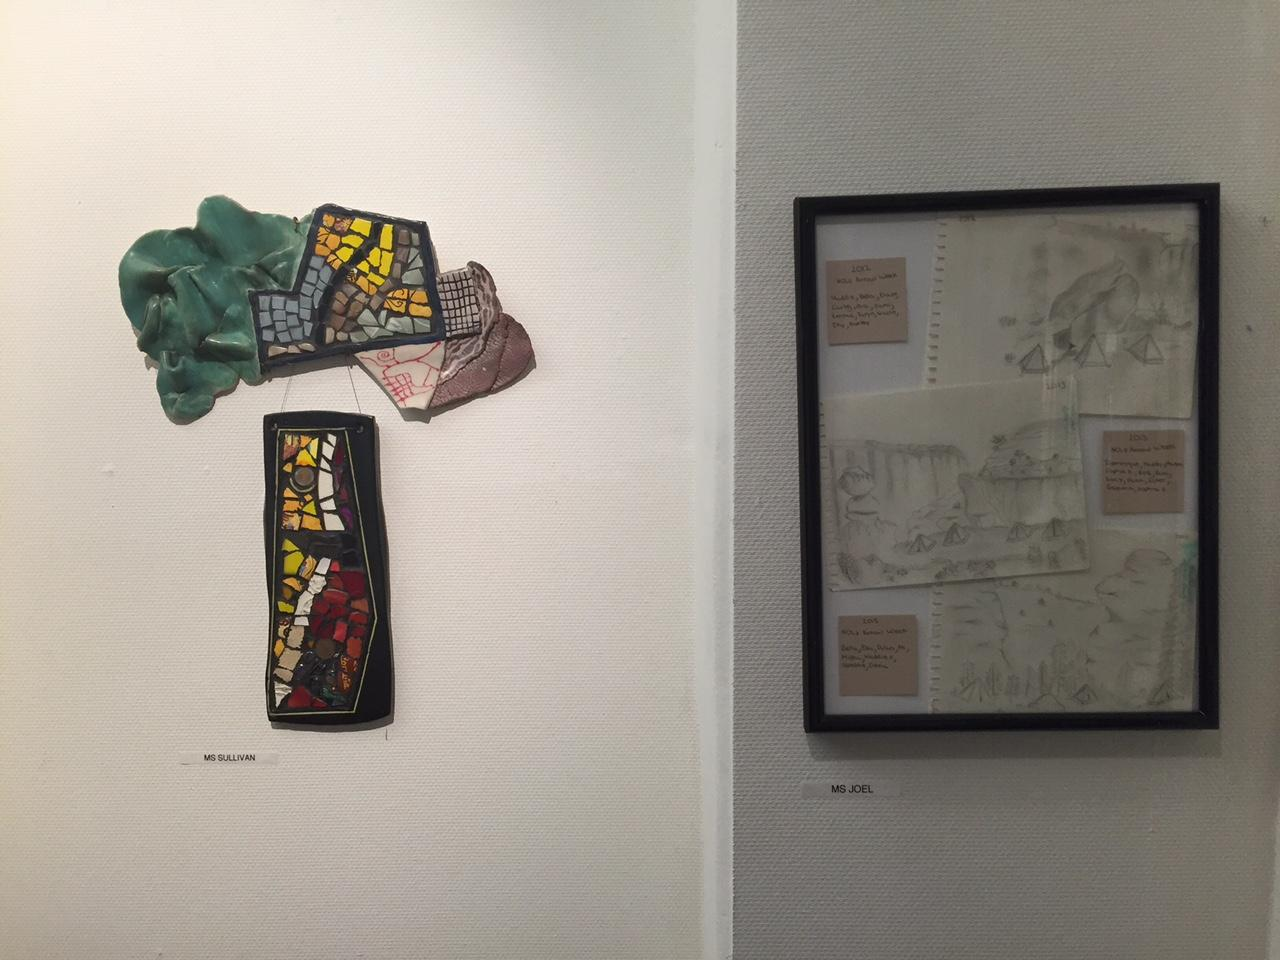 There are also drawings and sculptures along the walls of the gallery, such as Sue Sullivan and Jerilyn Joel's pieces.